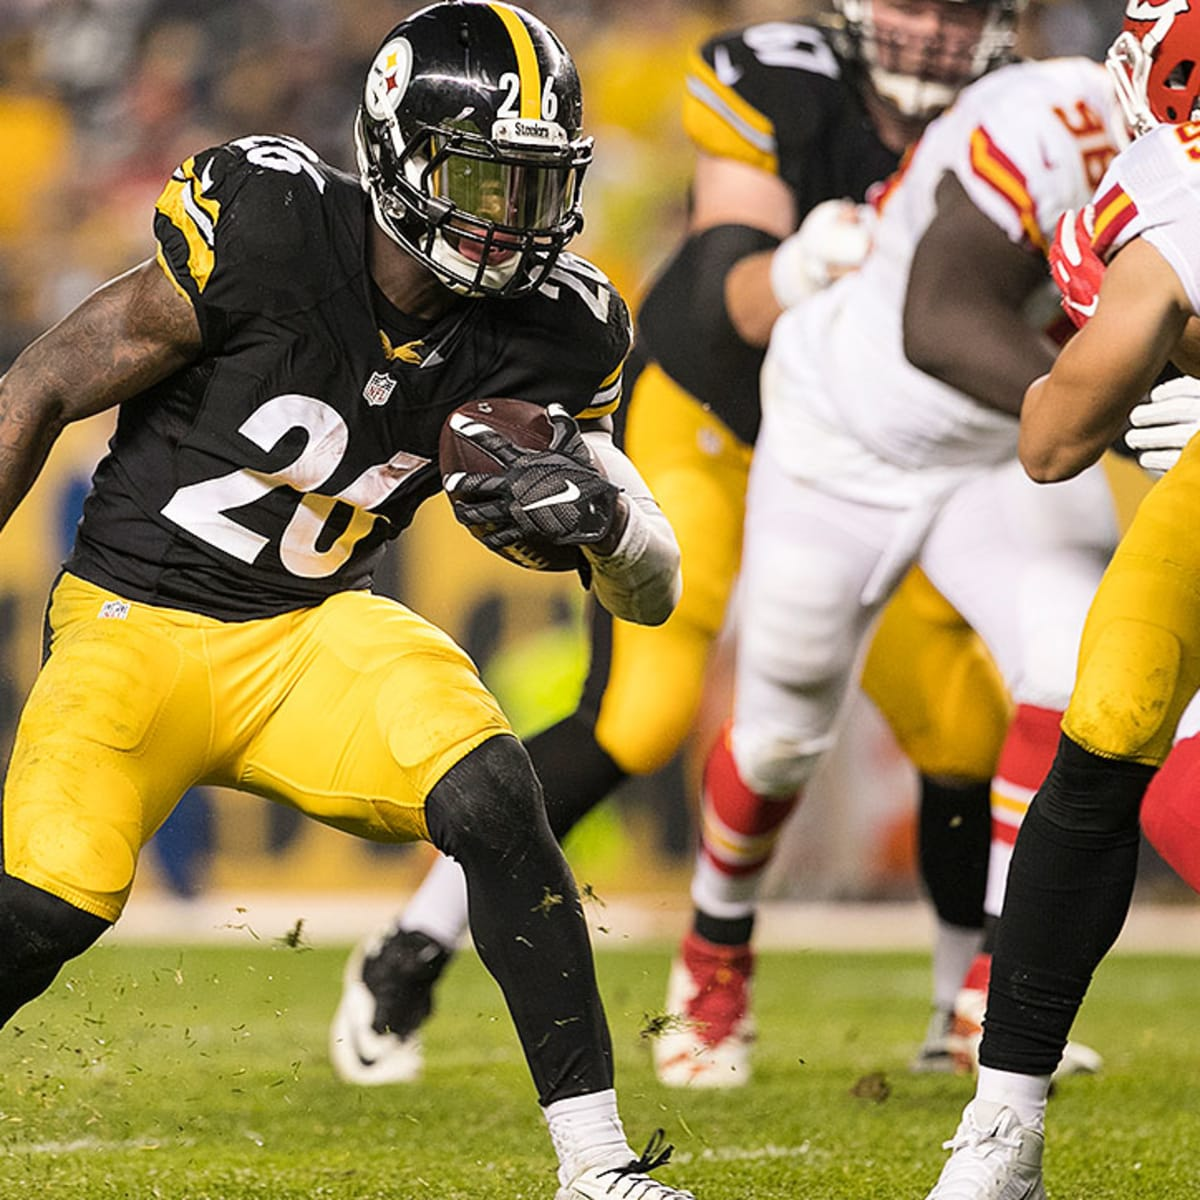 Fantasy Football Rankings Week 5 Sleepers Lineup Advice Si Kids Sports News For Kids Kids Games And More